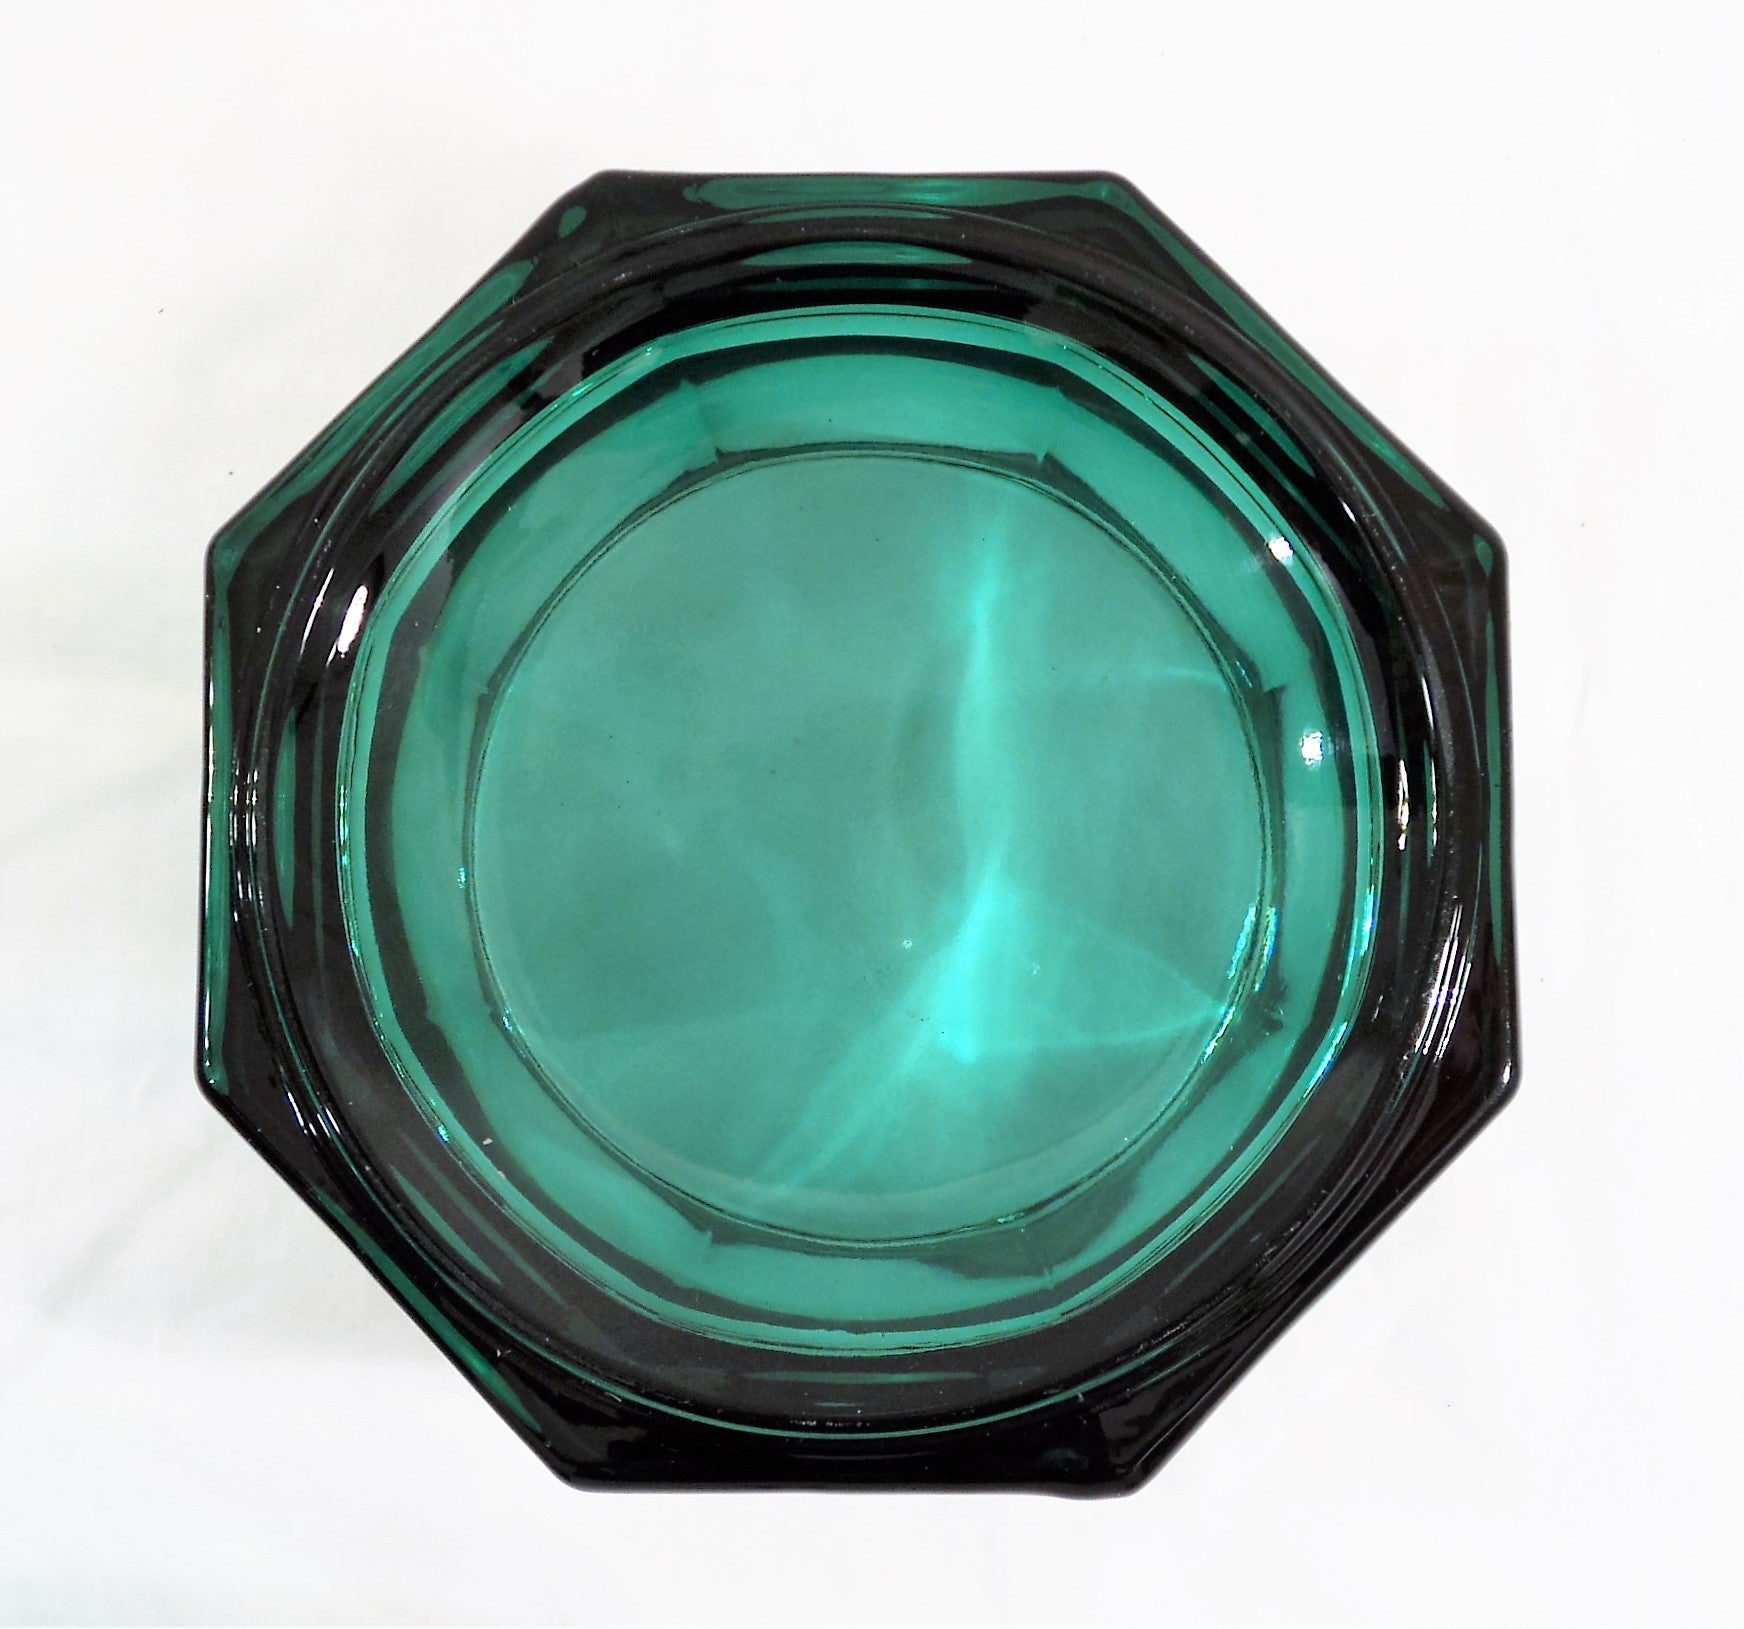 Hexagonal Teal Glass Covered Candy Dish